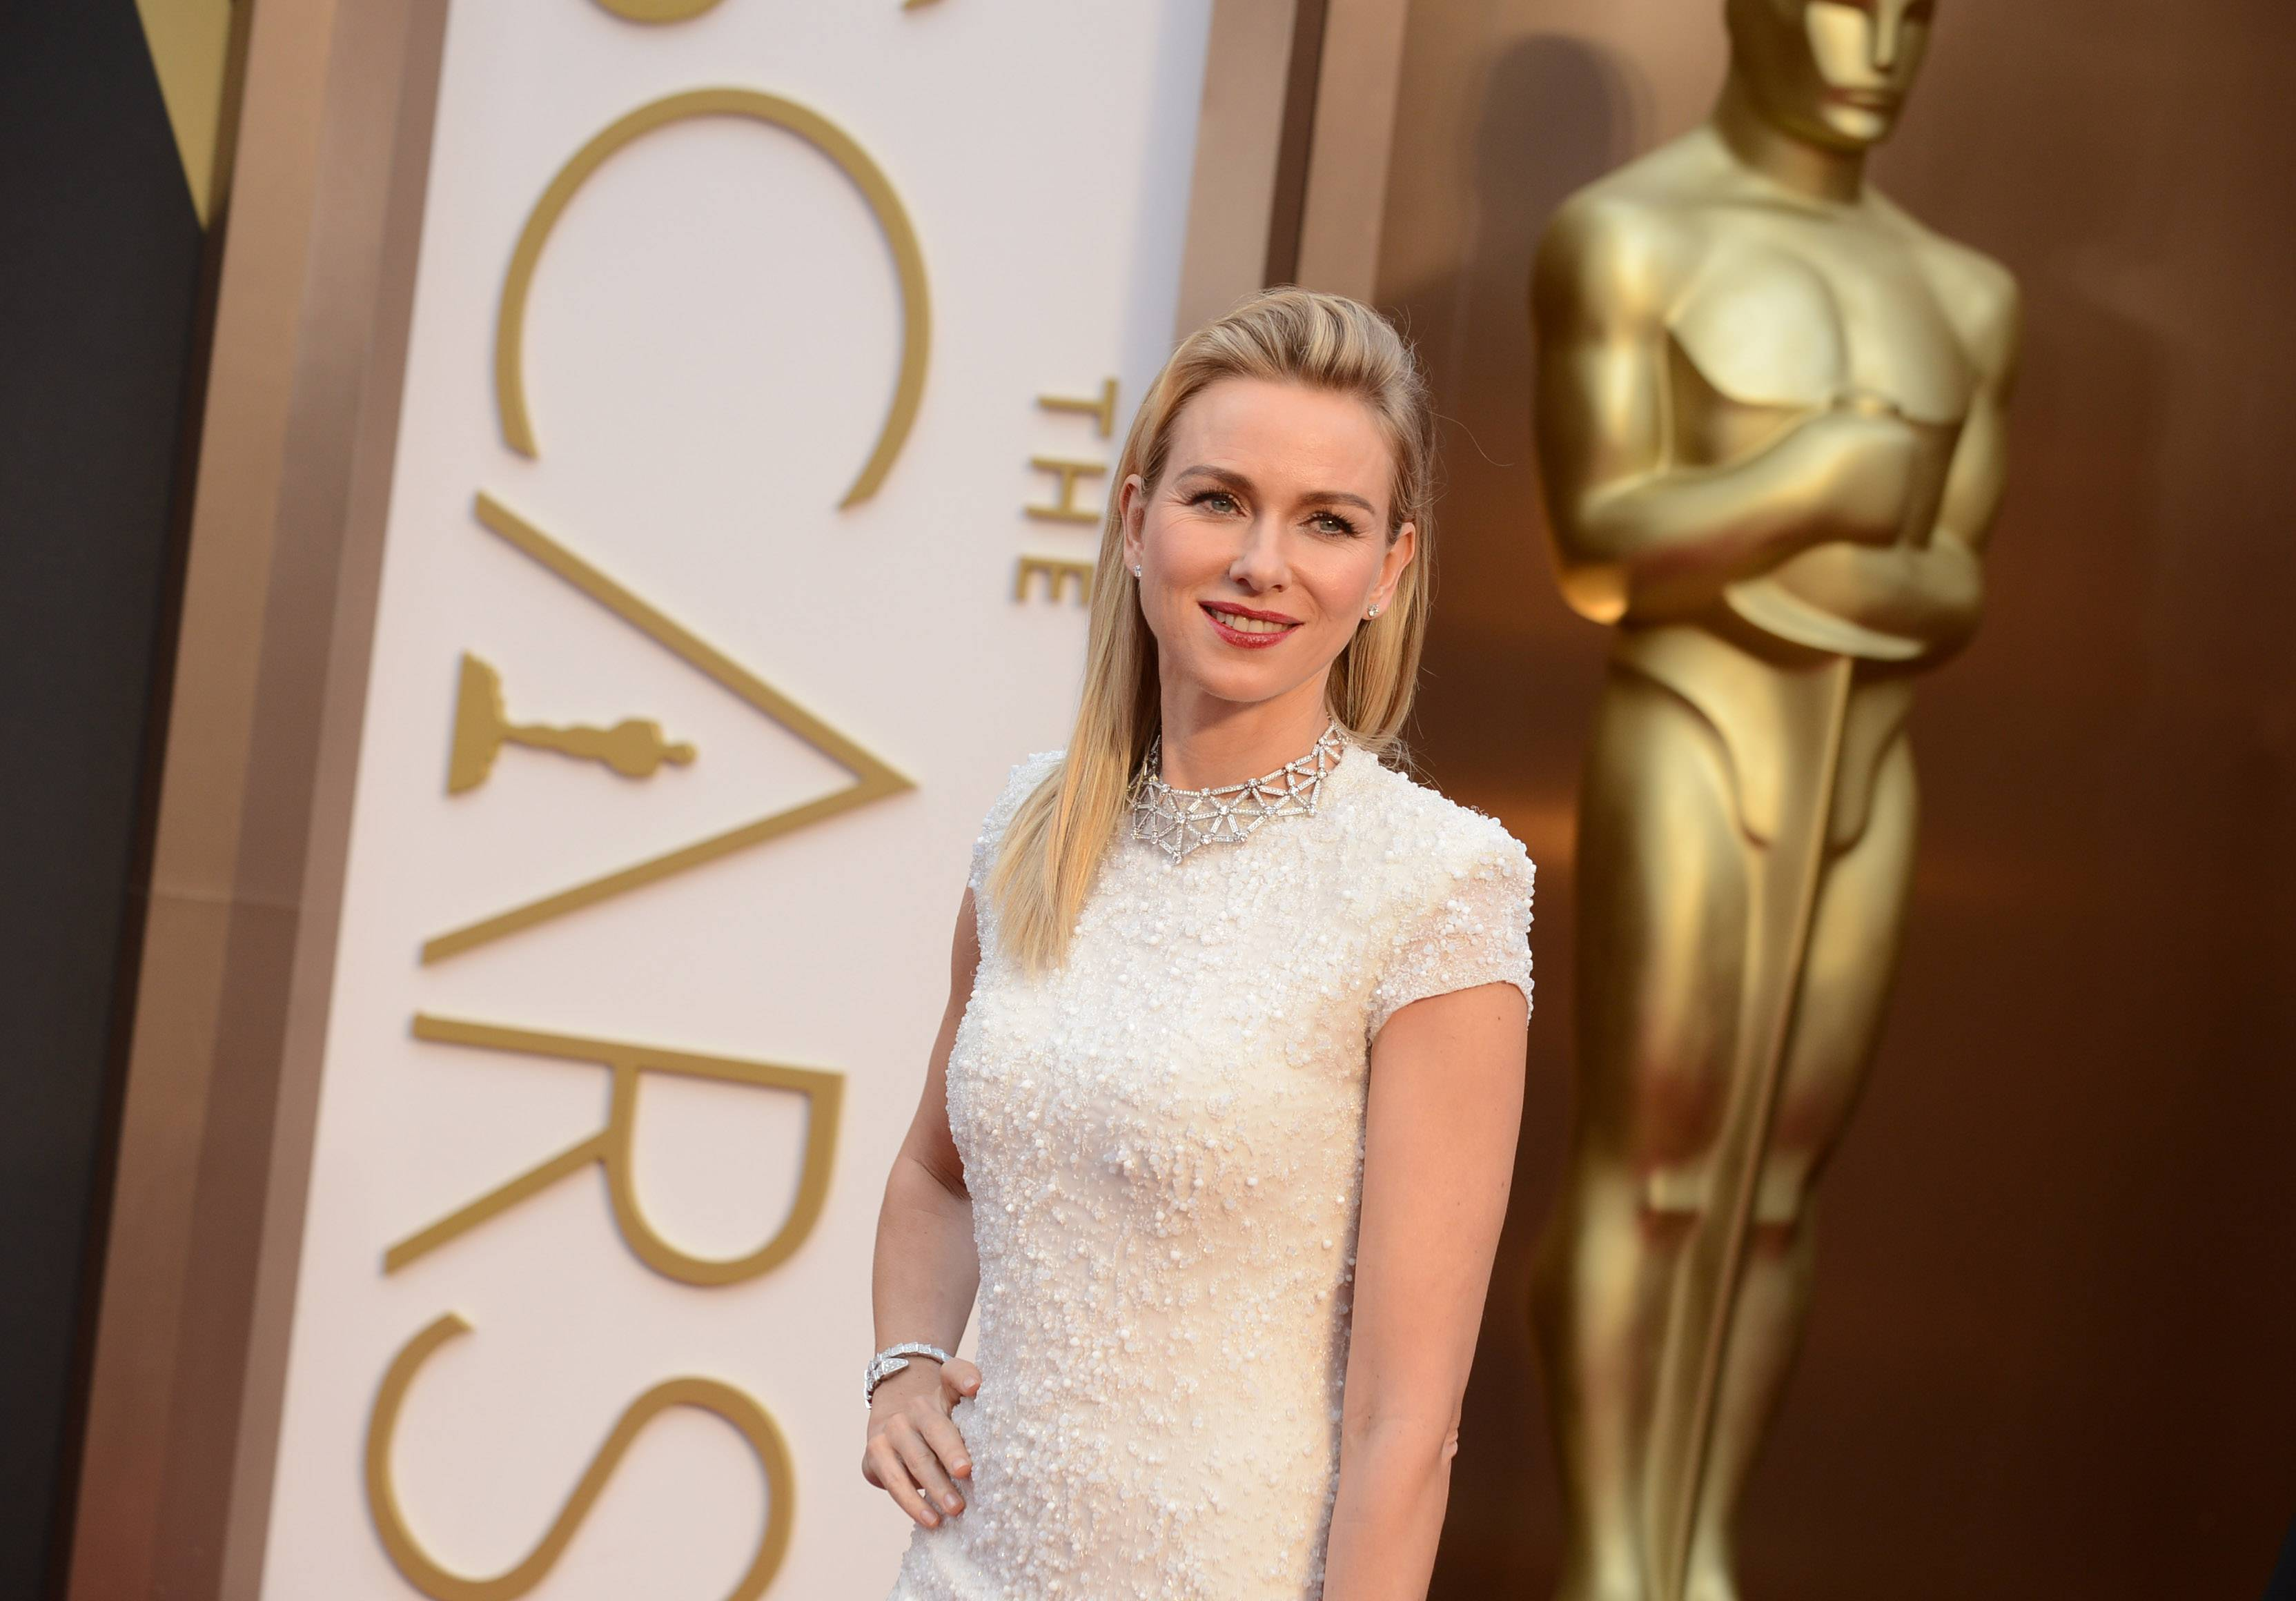 Naomi Watts shows off her Calvin Klein gown at the Oscars on Sunday in Los Angeles.